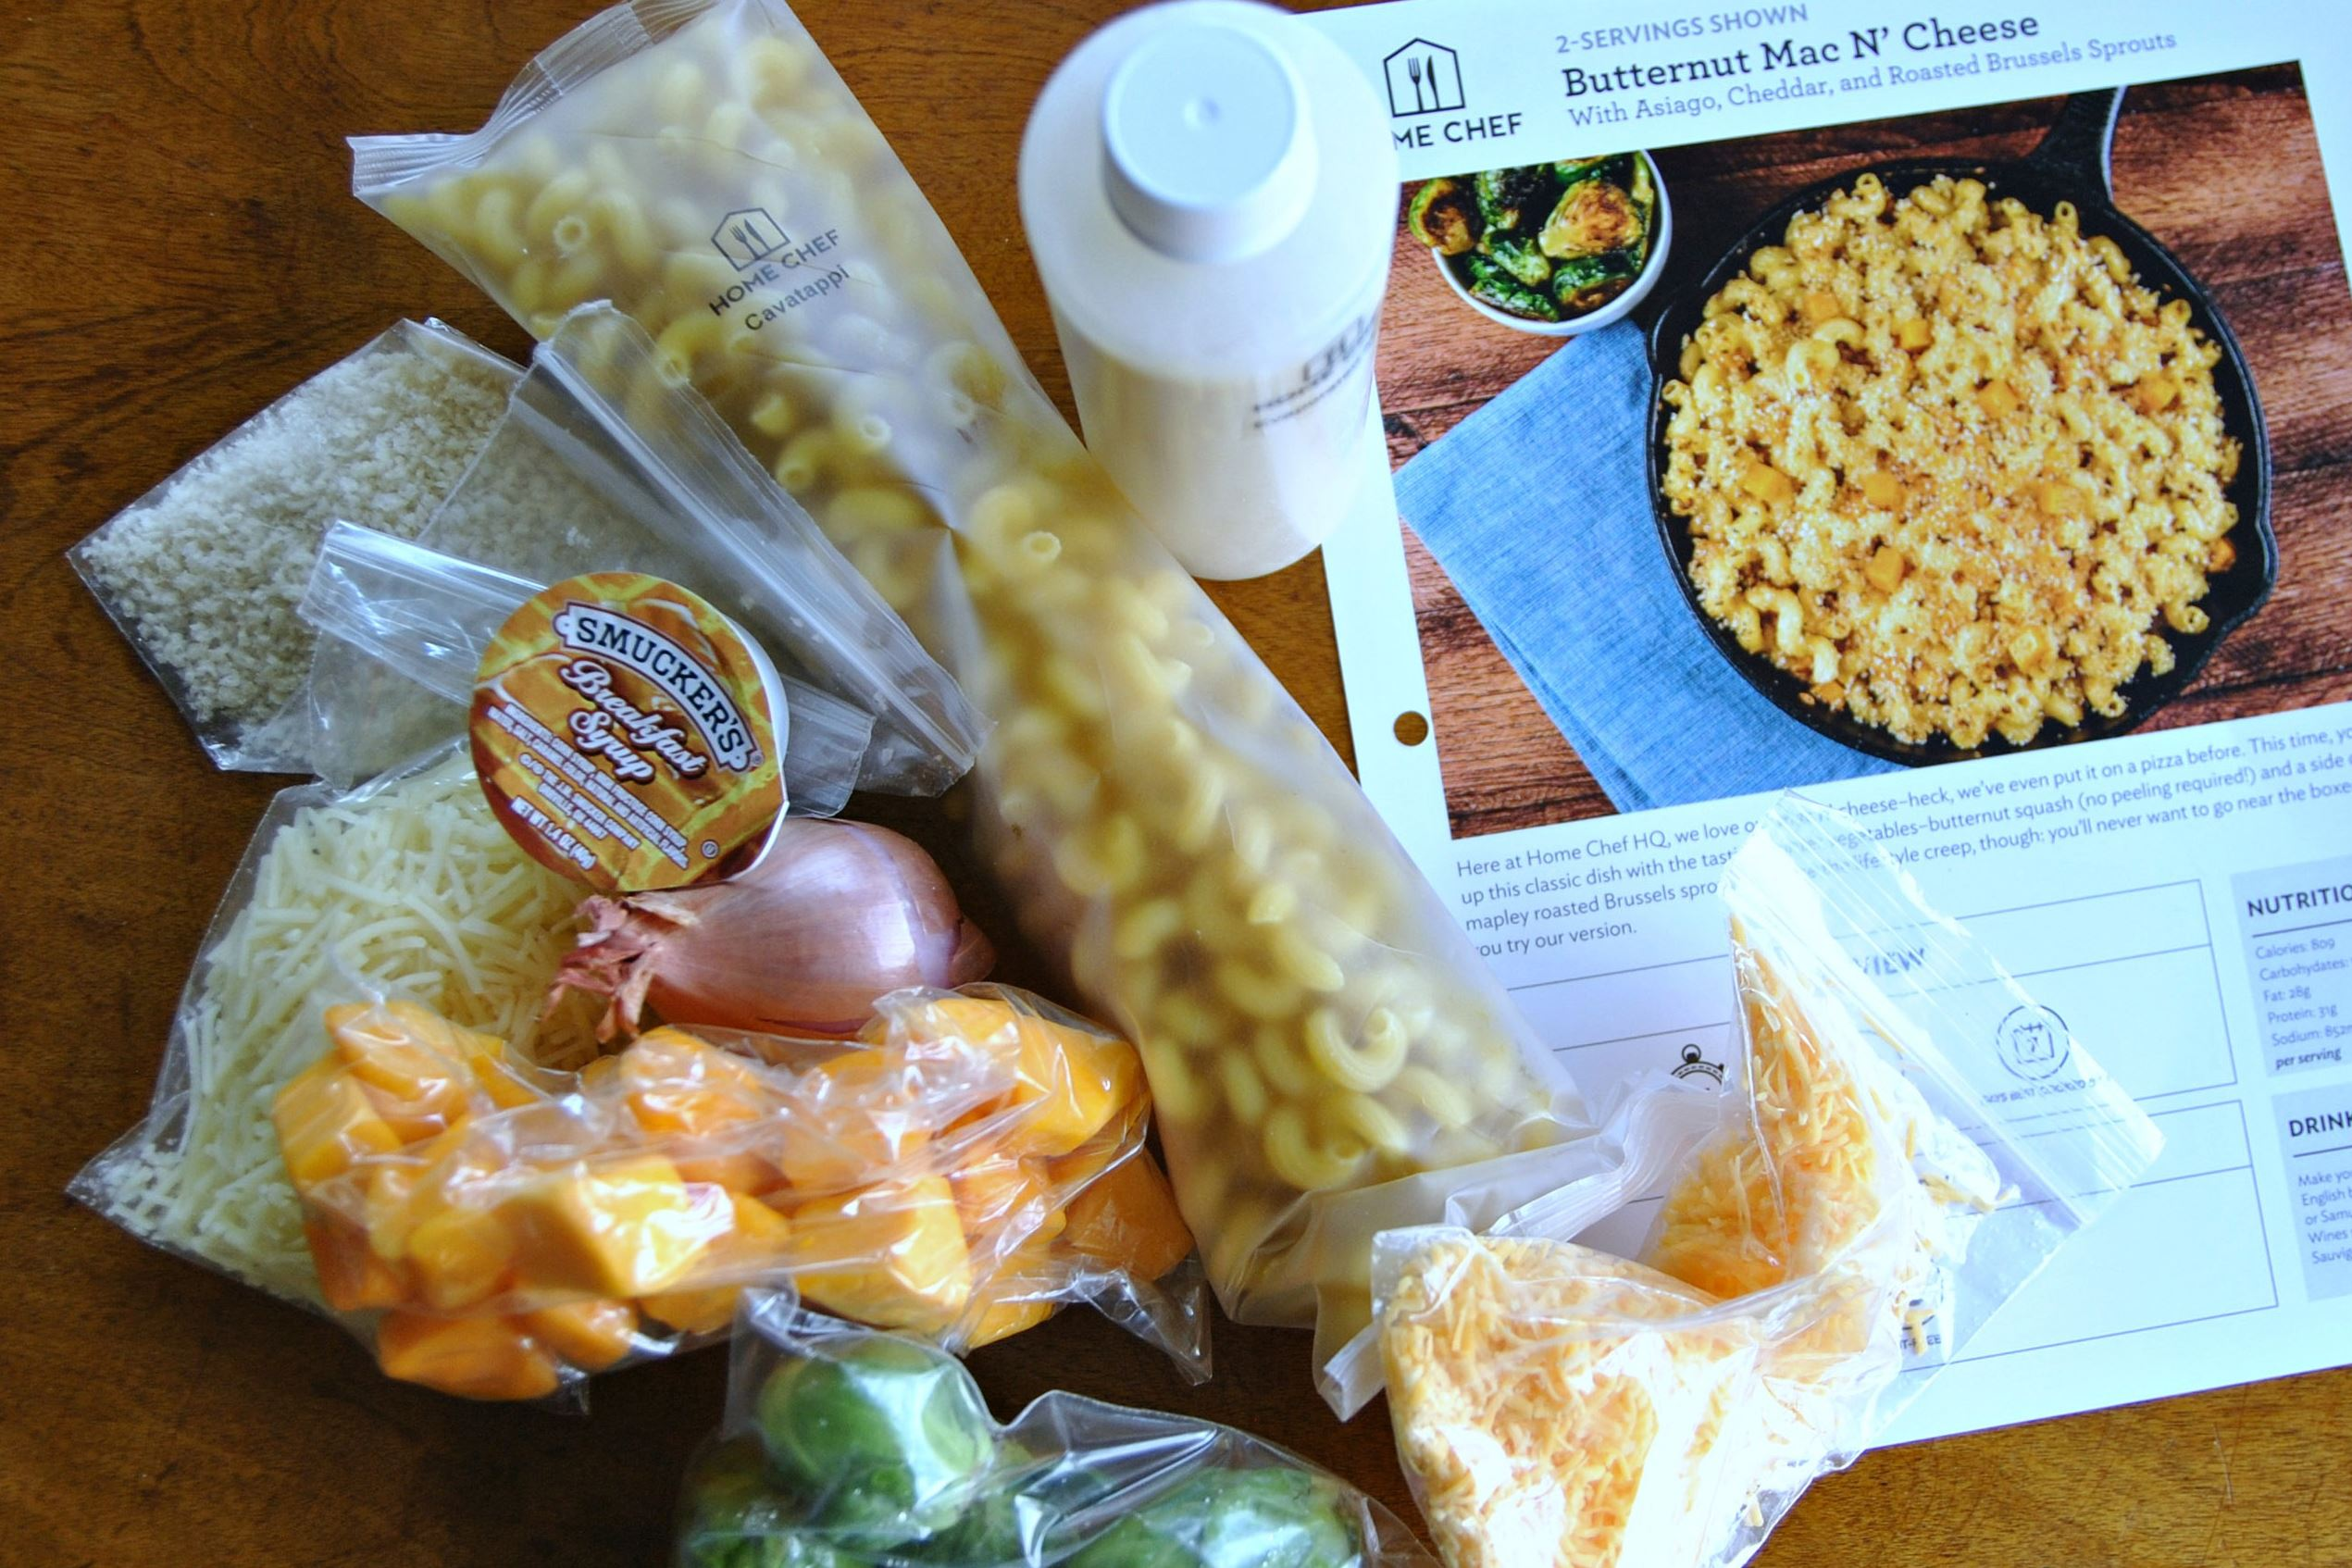 dinnerinabox0309-home-chef-6 Home Chef Meal Box.